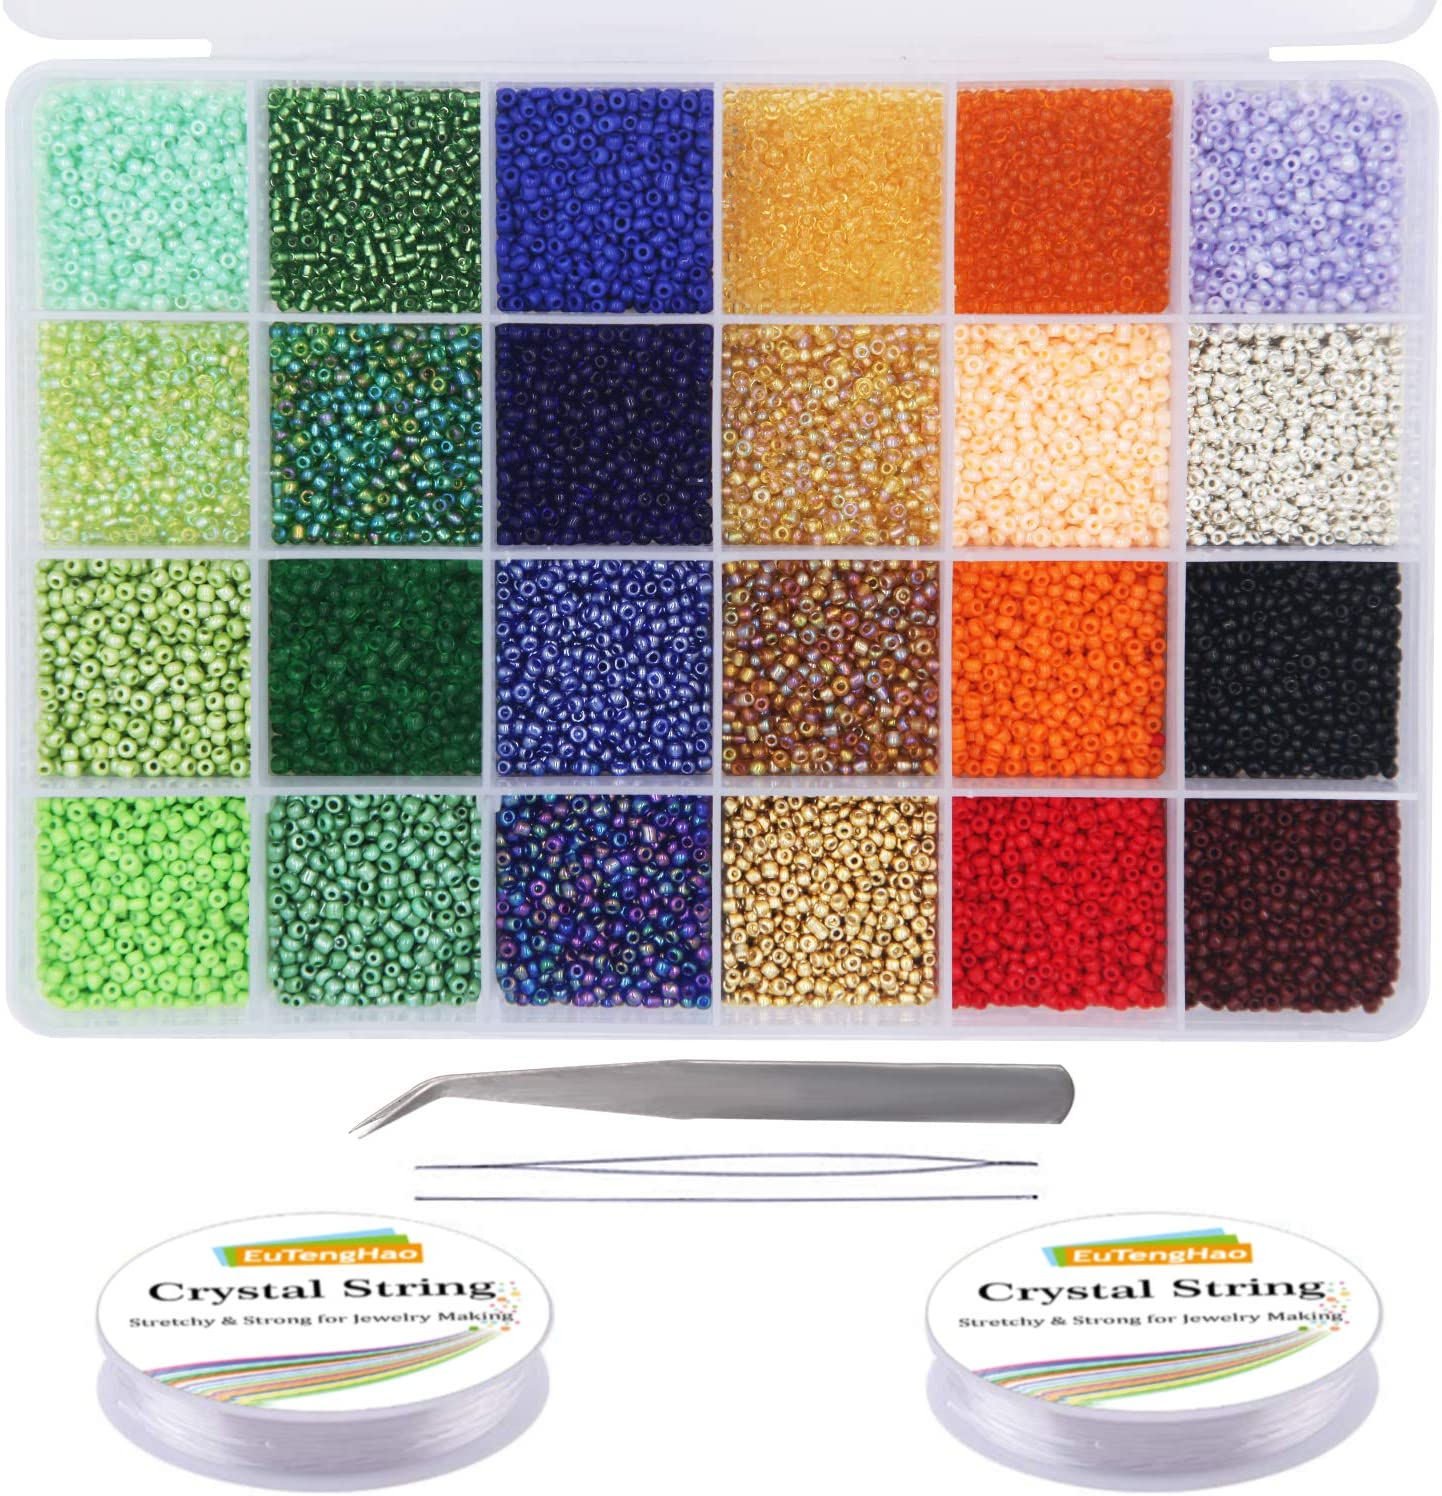 EuTengHao 14400pcs Glass Seed Beads Small Craft Beads for DIY Bracelet Necklaces Crafting Jewelry Making Supplies with Two 0.5mm Clear Bracelet String (600Pcs Per Color, 24 Colors)